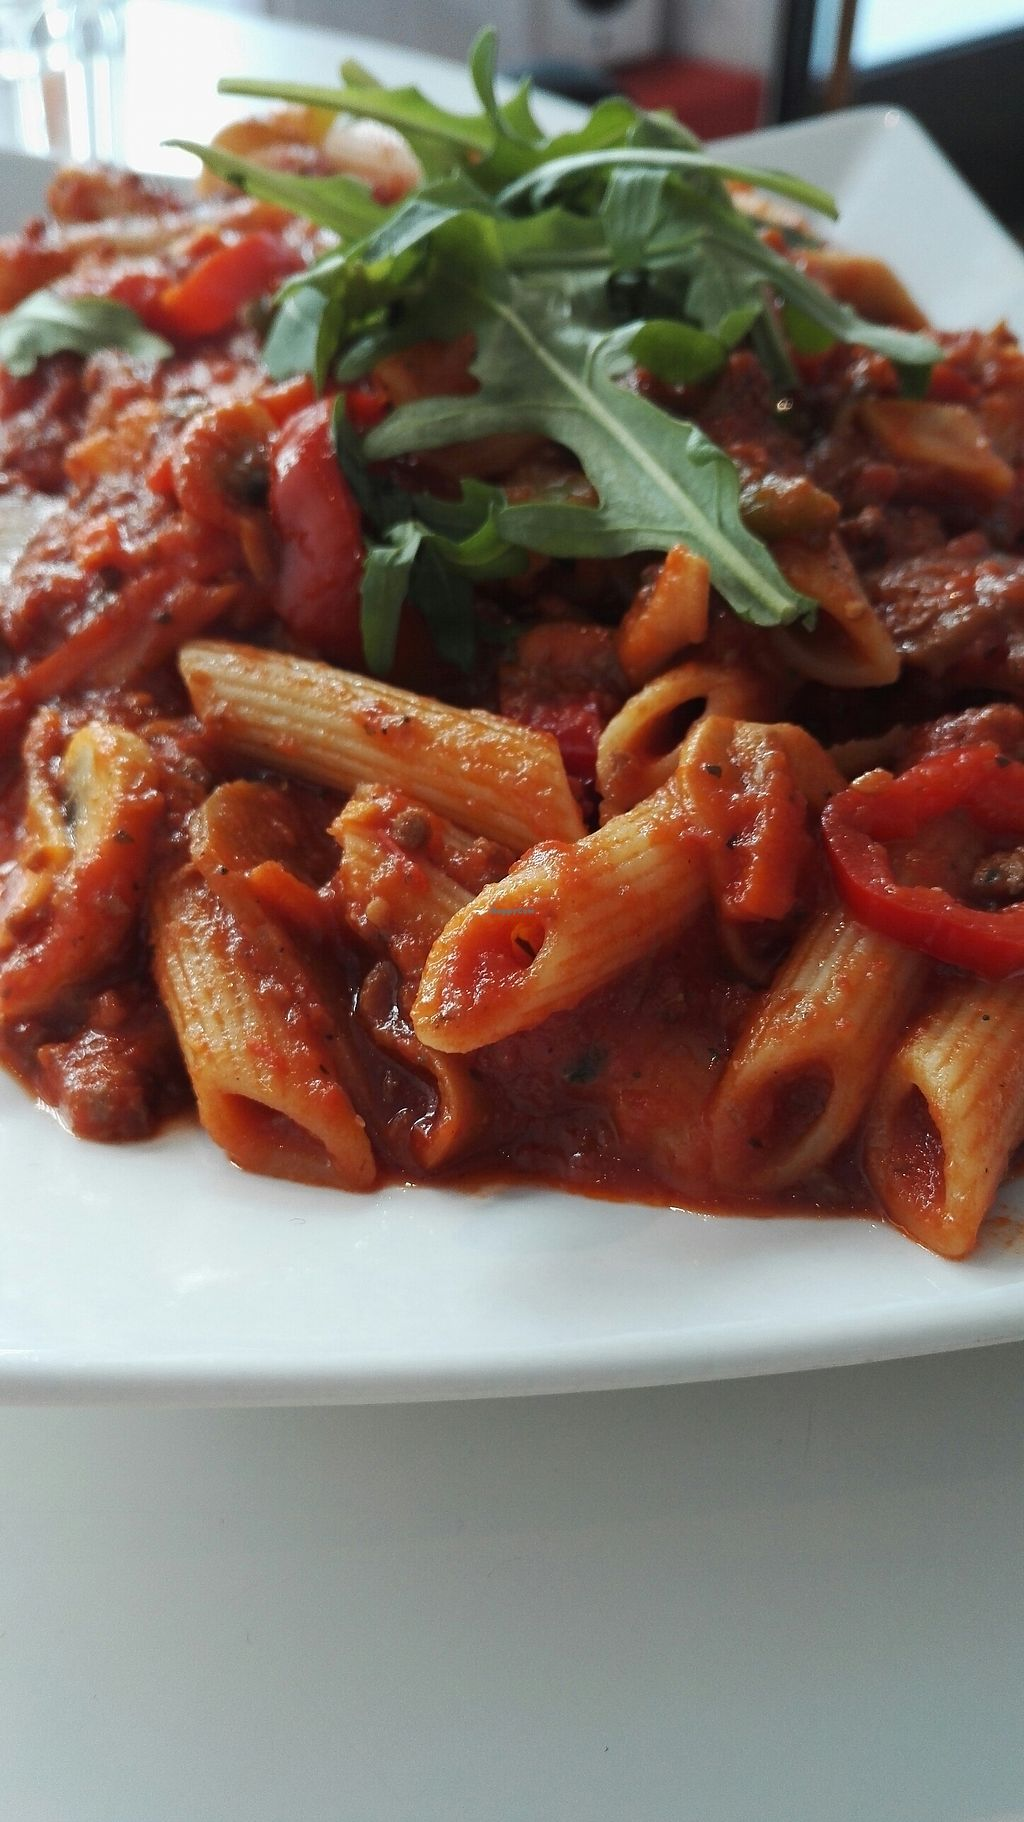 """Photo of Tikitak  by <a href=""""/members/profile/Miio%20Seppaenen"""">Miio Seppaenen</a> <br/>huge bolognese style pasta <br/> July 8, 2017  - <a href='/contact/abuse/image/87468/277968'>Report</a>"""